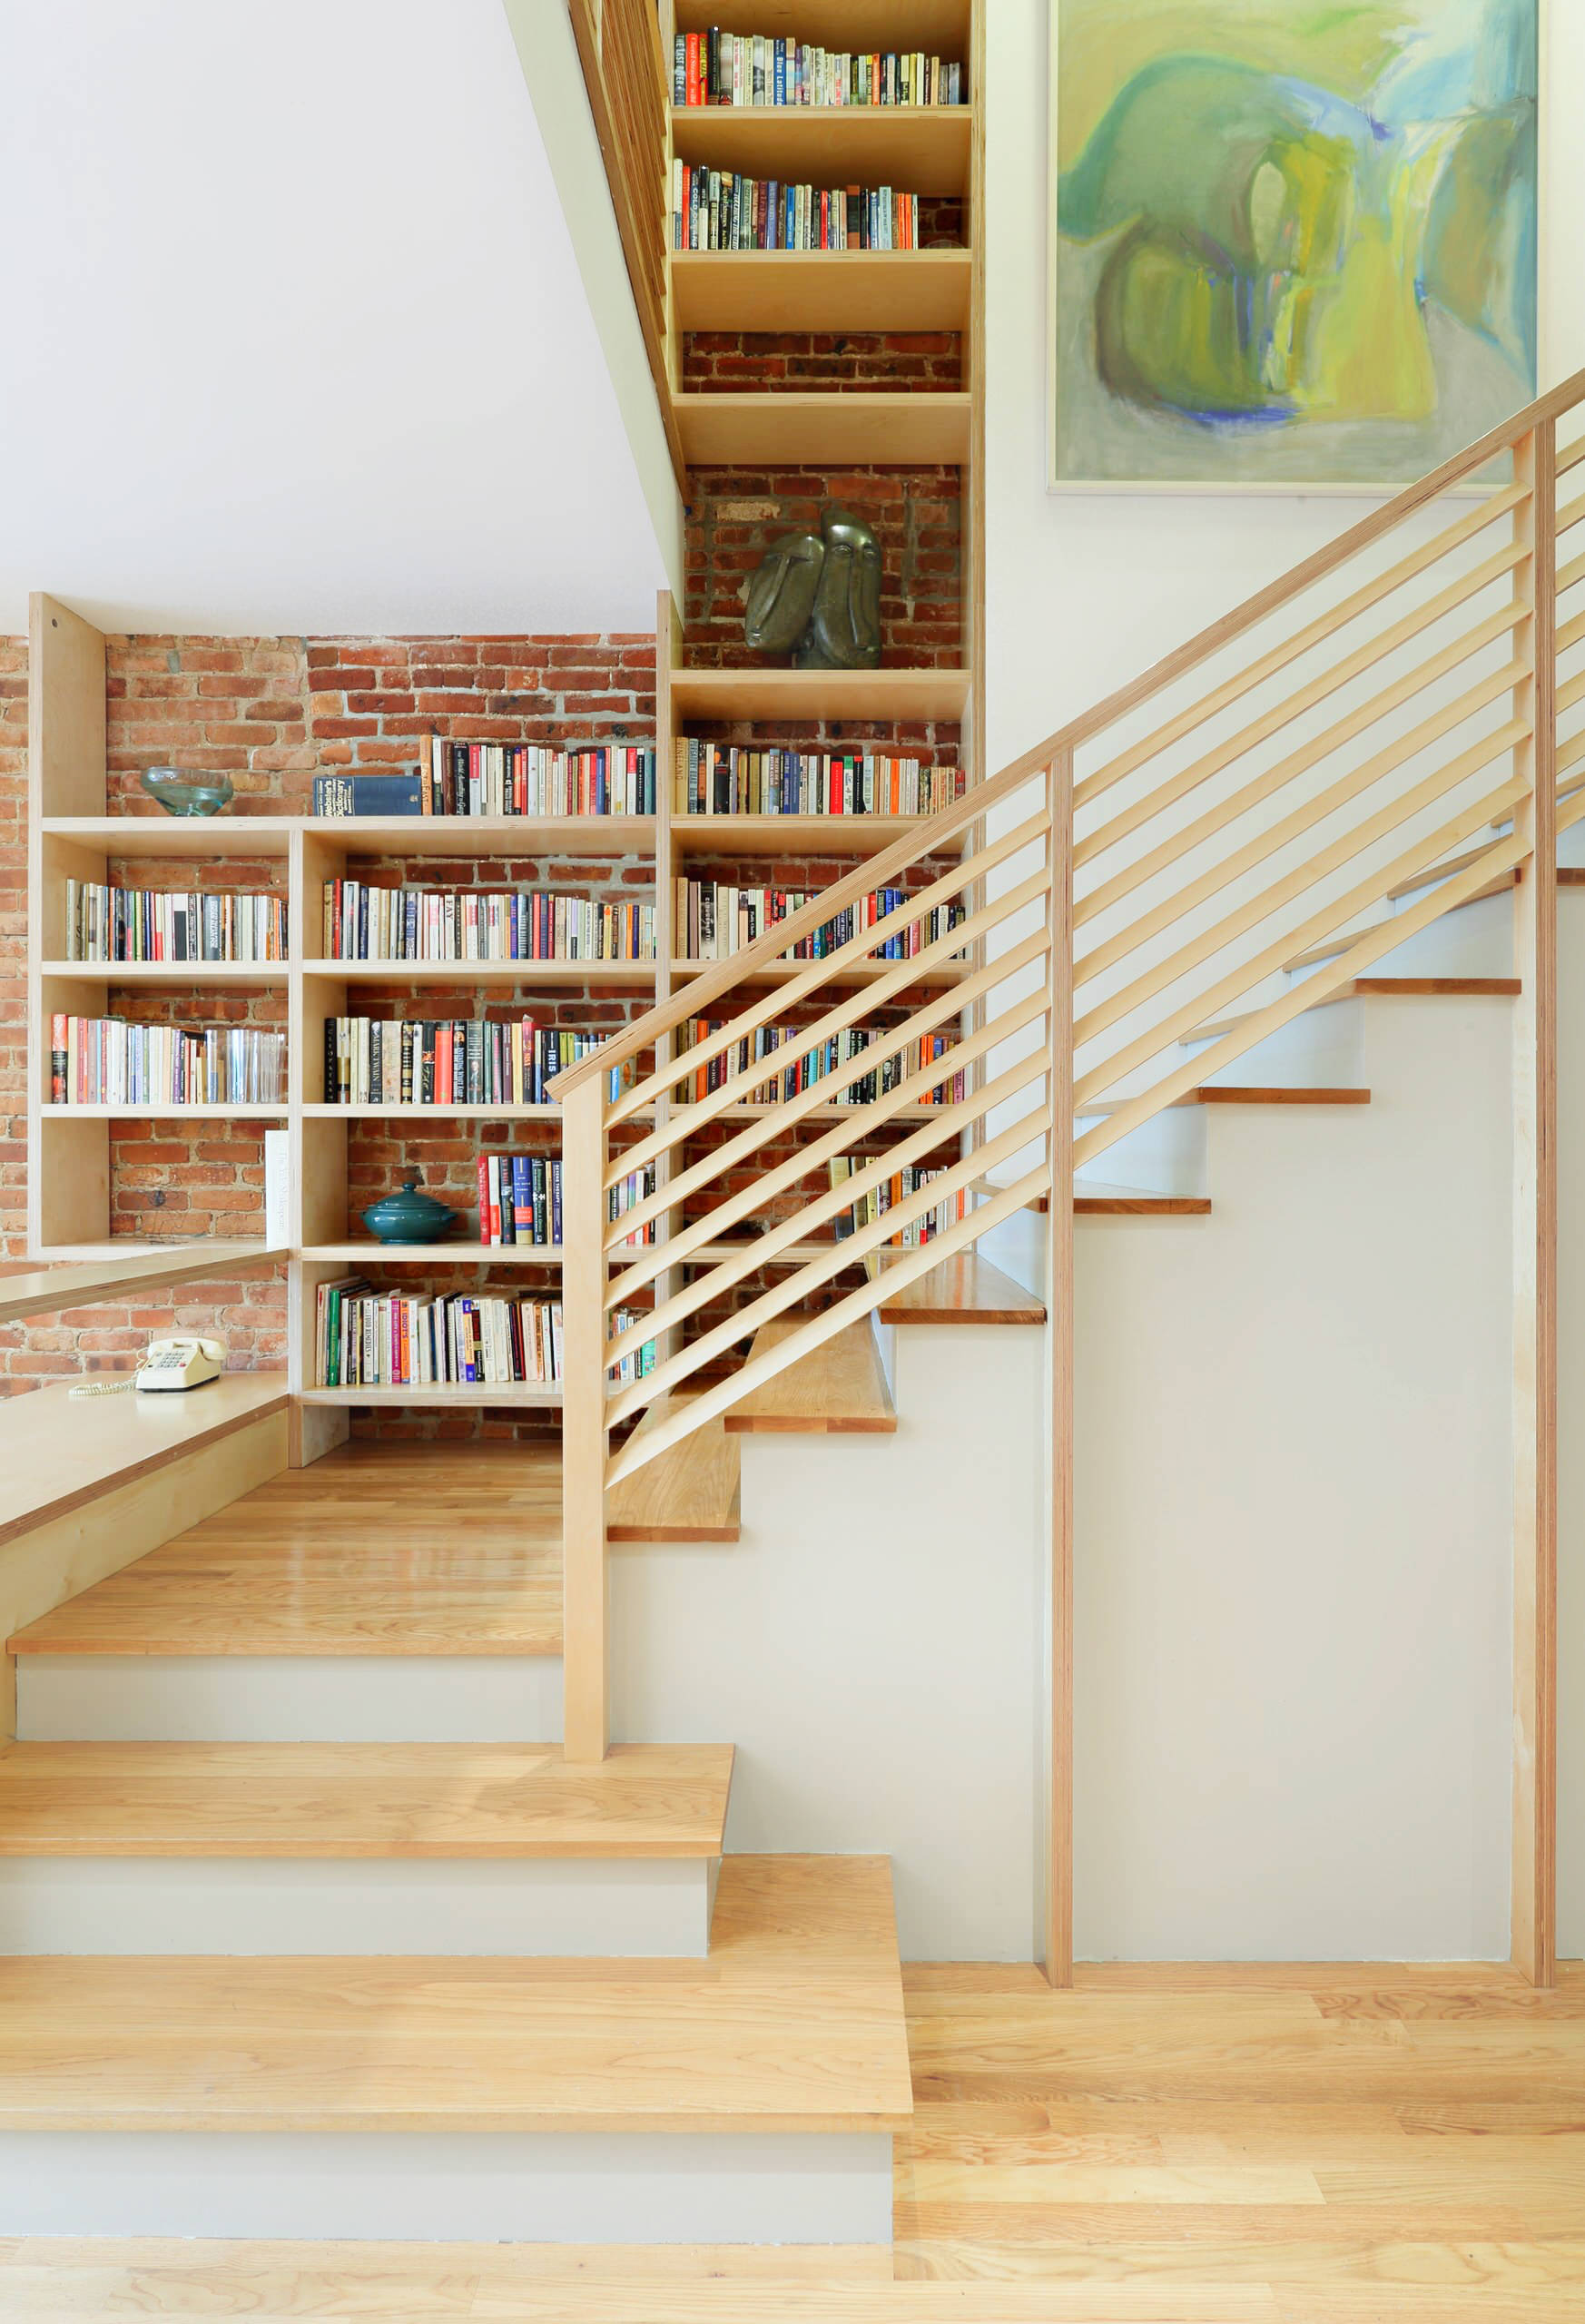 brick-and-wood-stair-shelves